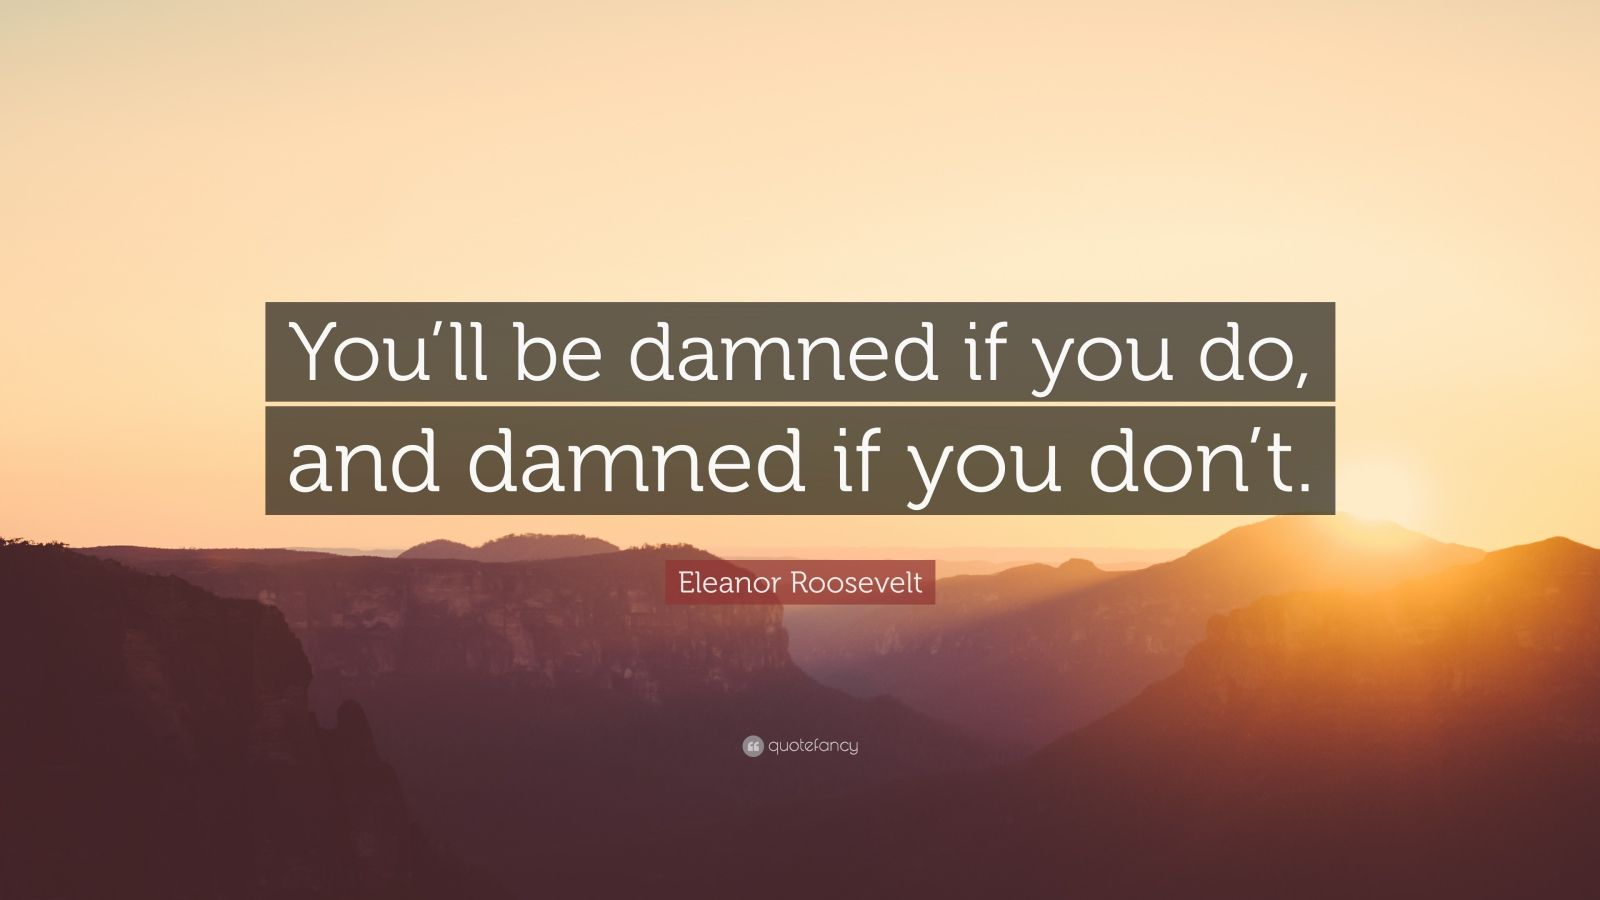 """Eleanor Roosevelt Quote: """"You'll be damned if you do, and damned if you don't."""""""